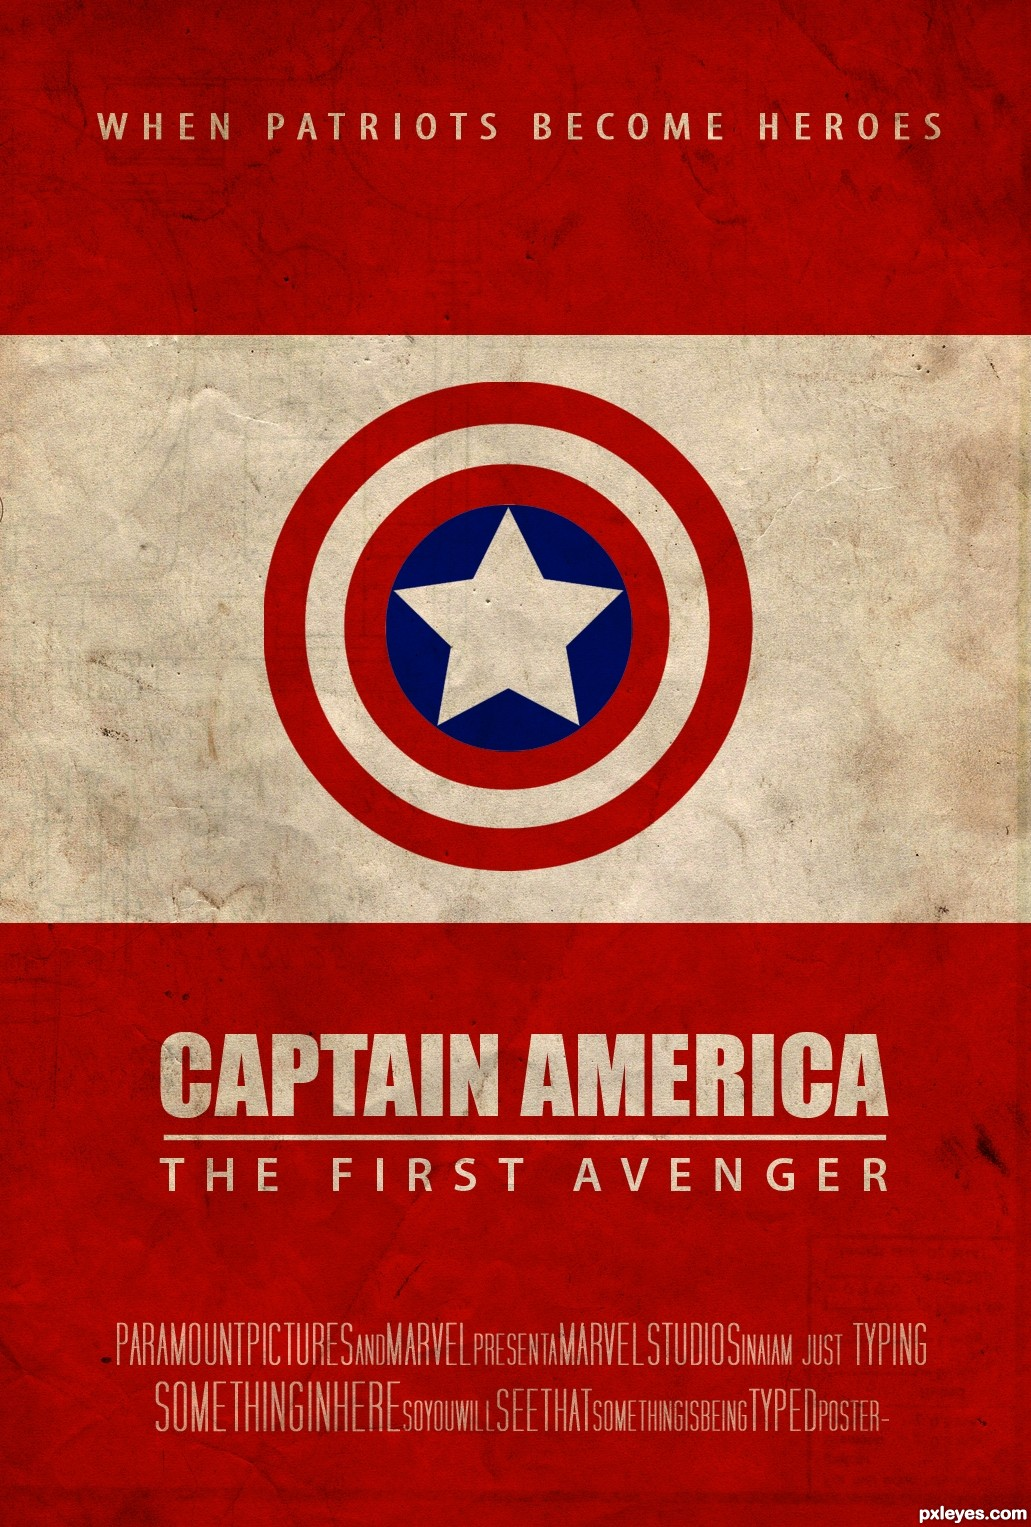 CAPTAIN AMERICA picture, by TimeGenius for: retro posters ... Horns Movie Poster